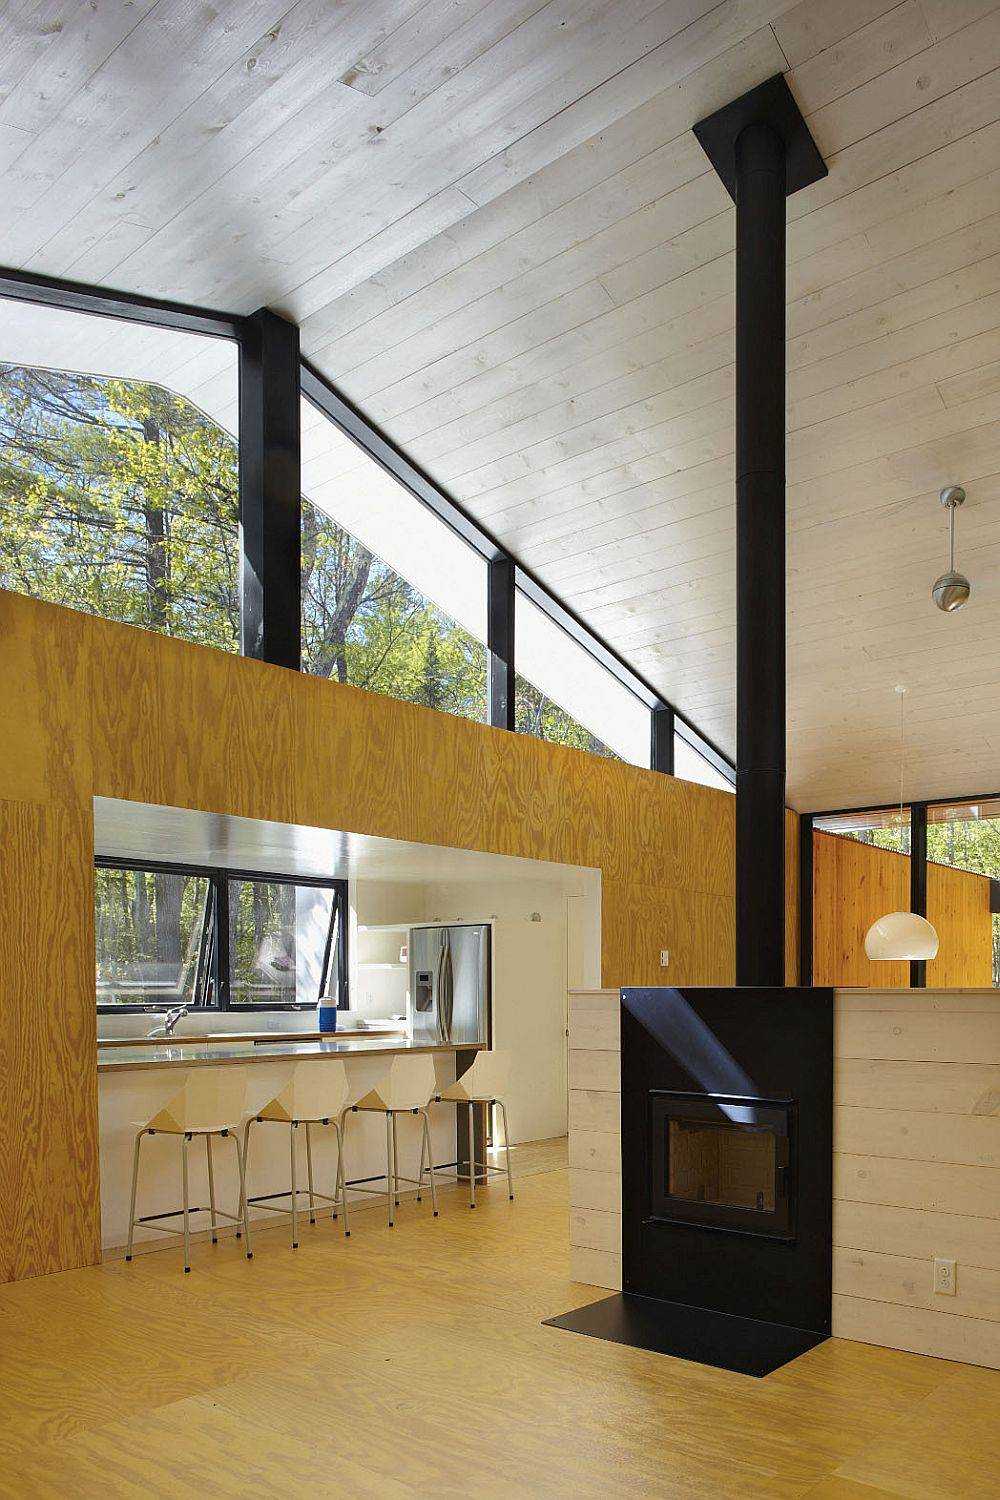 Gabled-roof-allows-for-aesthetic-use-of-clerestory-windows-in-this-home-56947